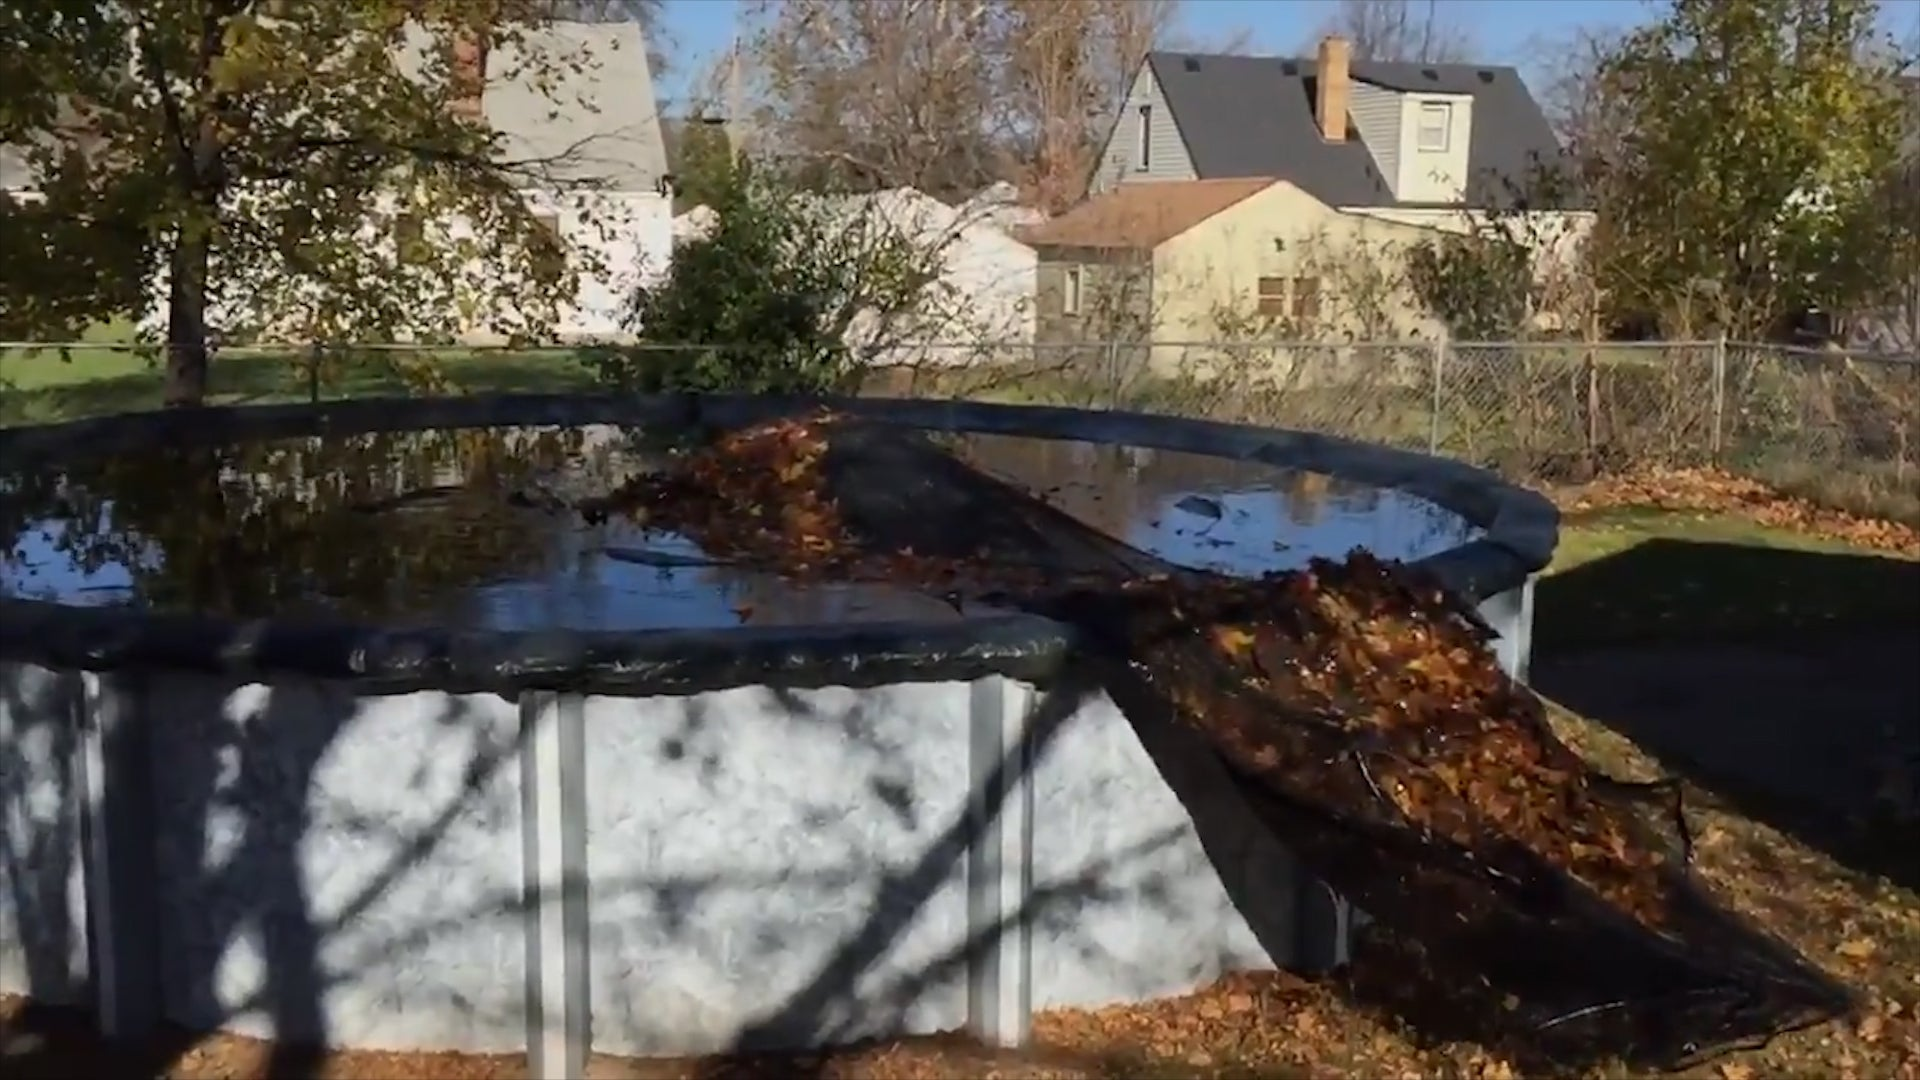 Life Hack to Remove Leaves from Pool